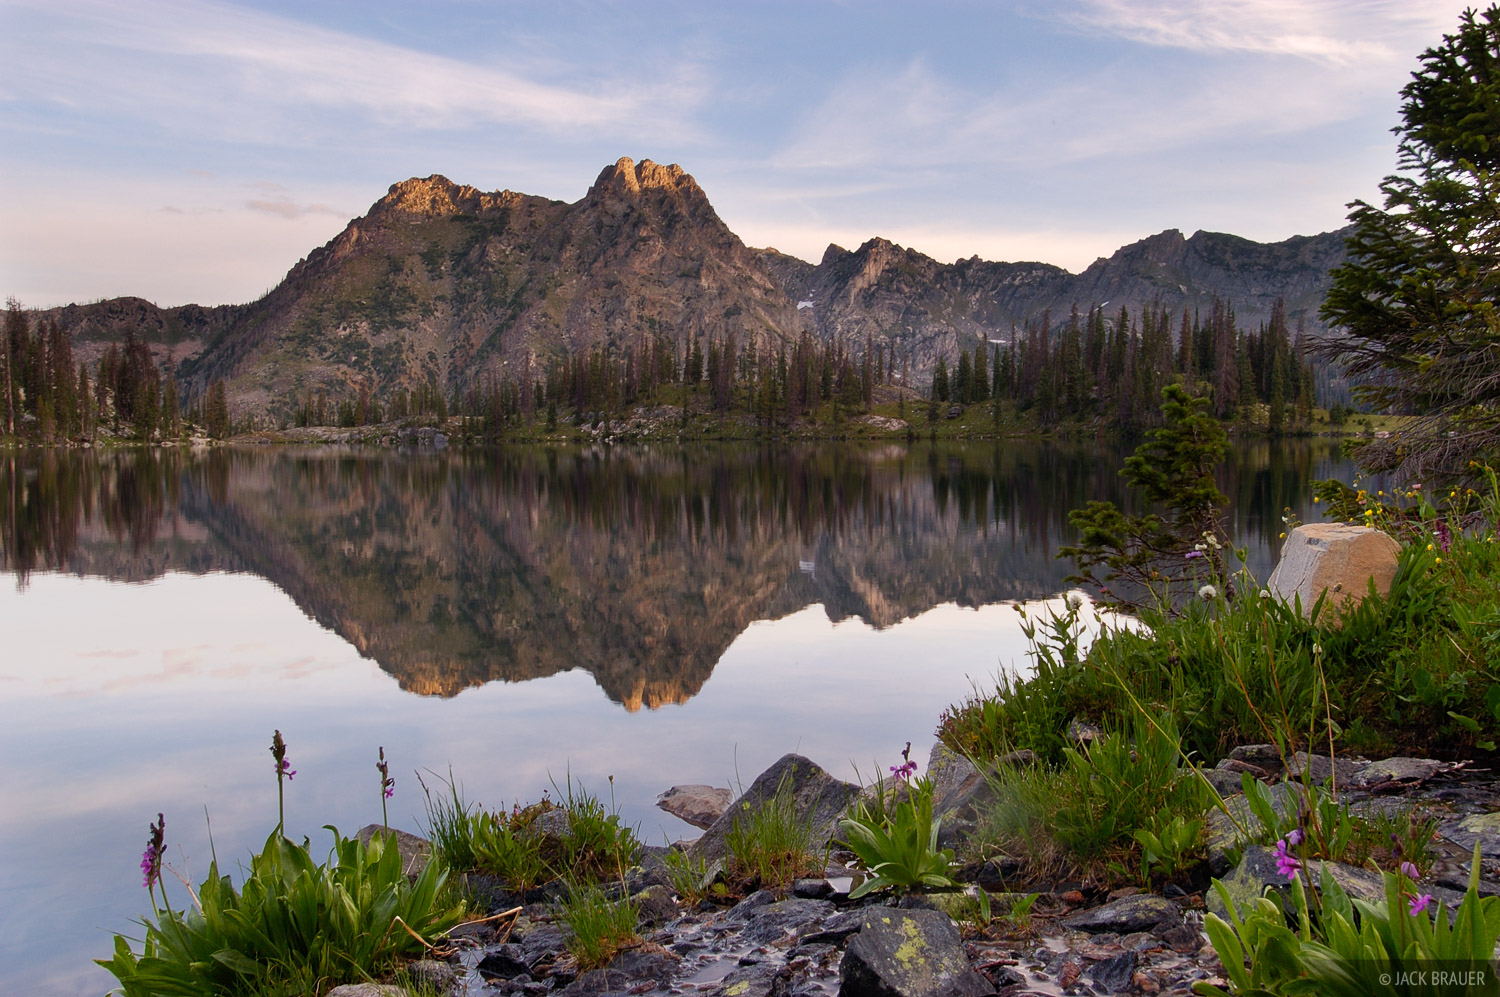 Big Agnes, Gilpin Lake, Zirkel Wilderness, Park Range, Colorado, Mount Zirkel Wilderness, photo